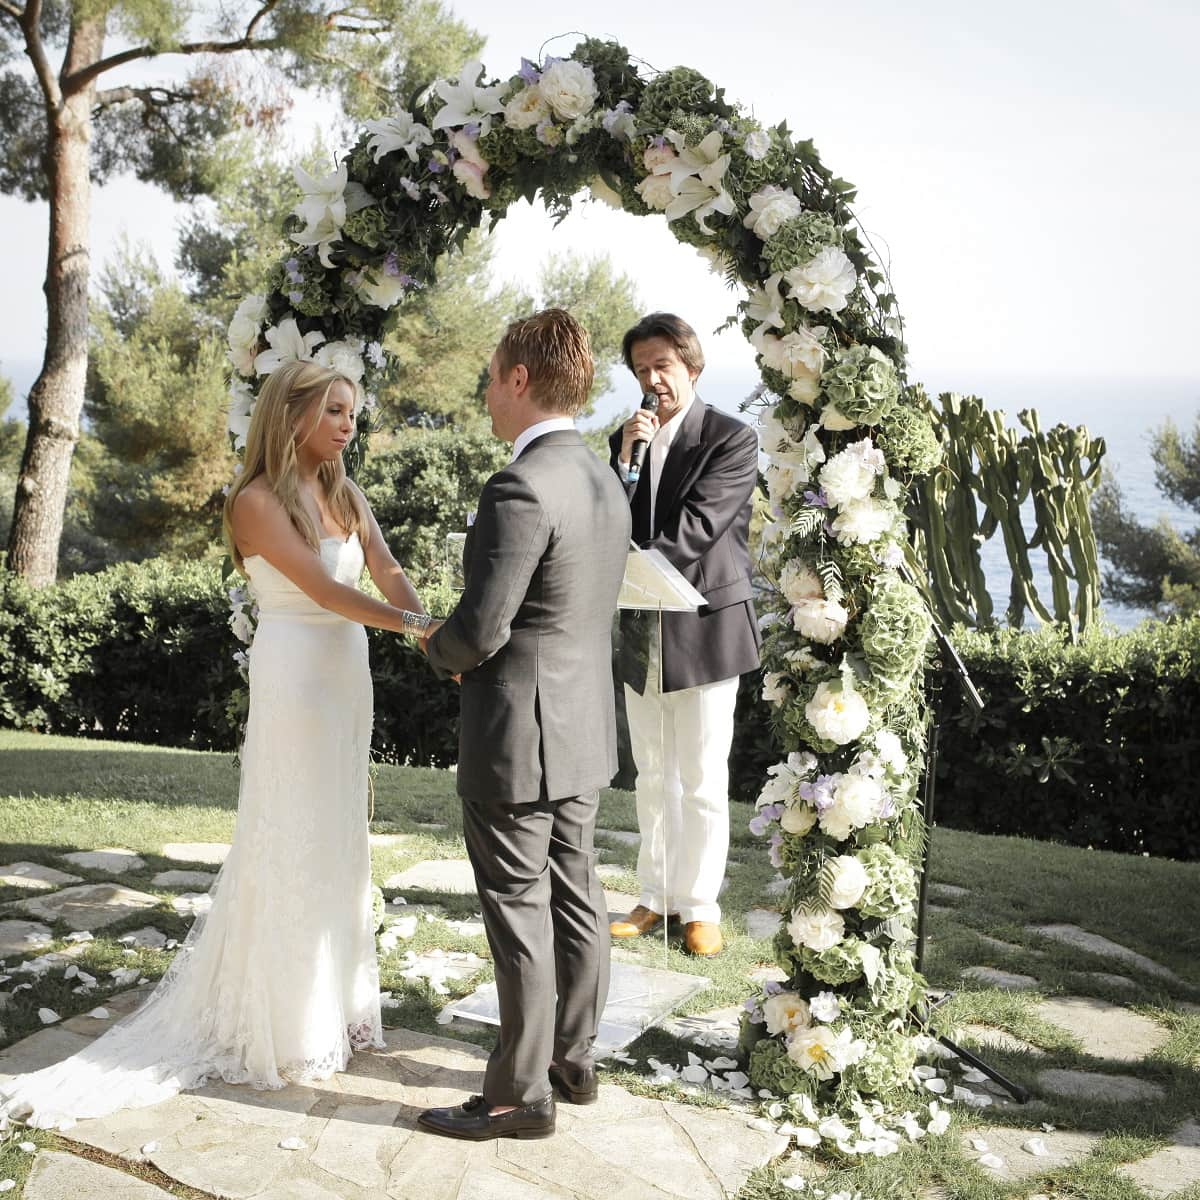 Avalon Events Wedding & Event Planner France, Italy, Greece, Mexico - Valued Member of the Weddings Abroad Guide Supplier Directory